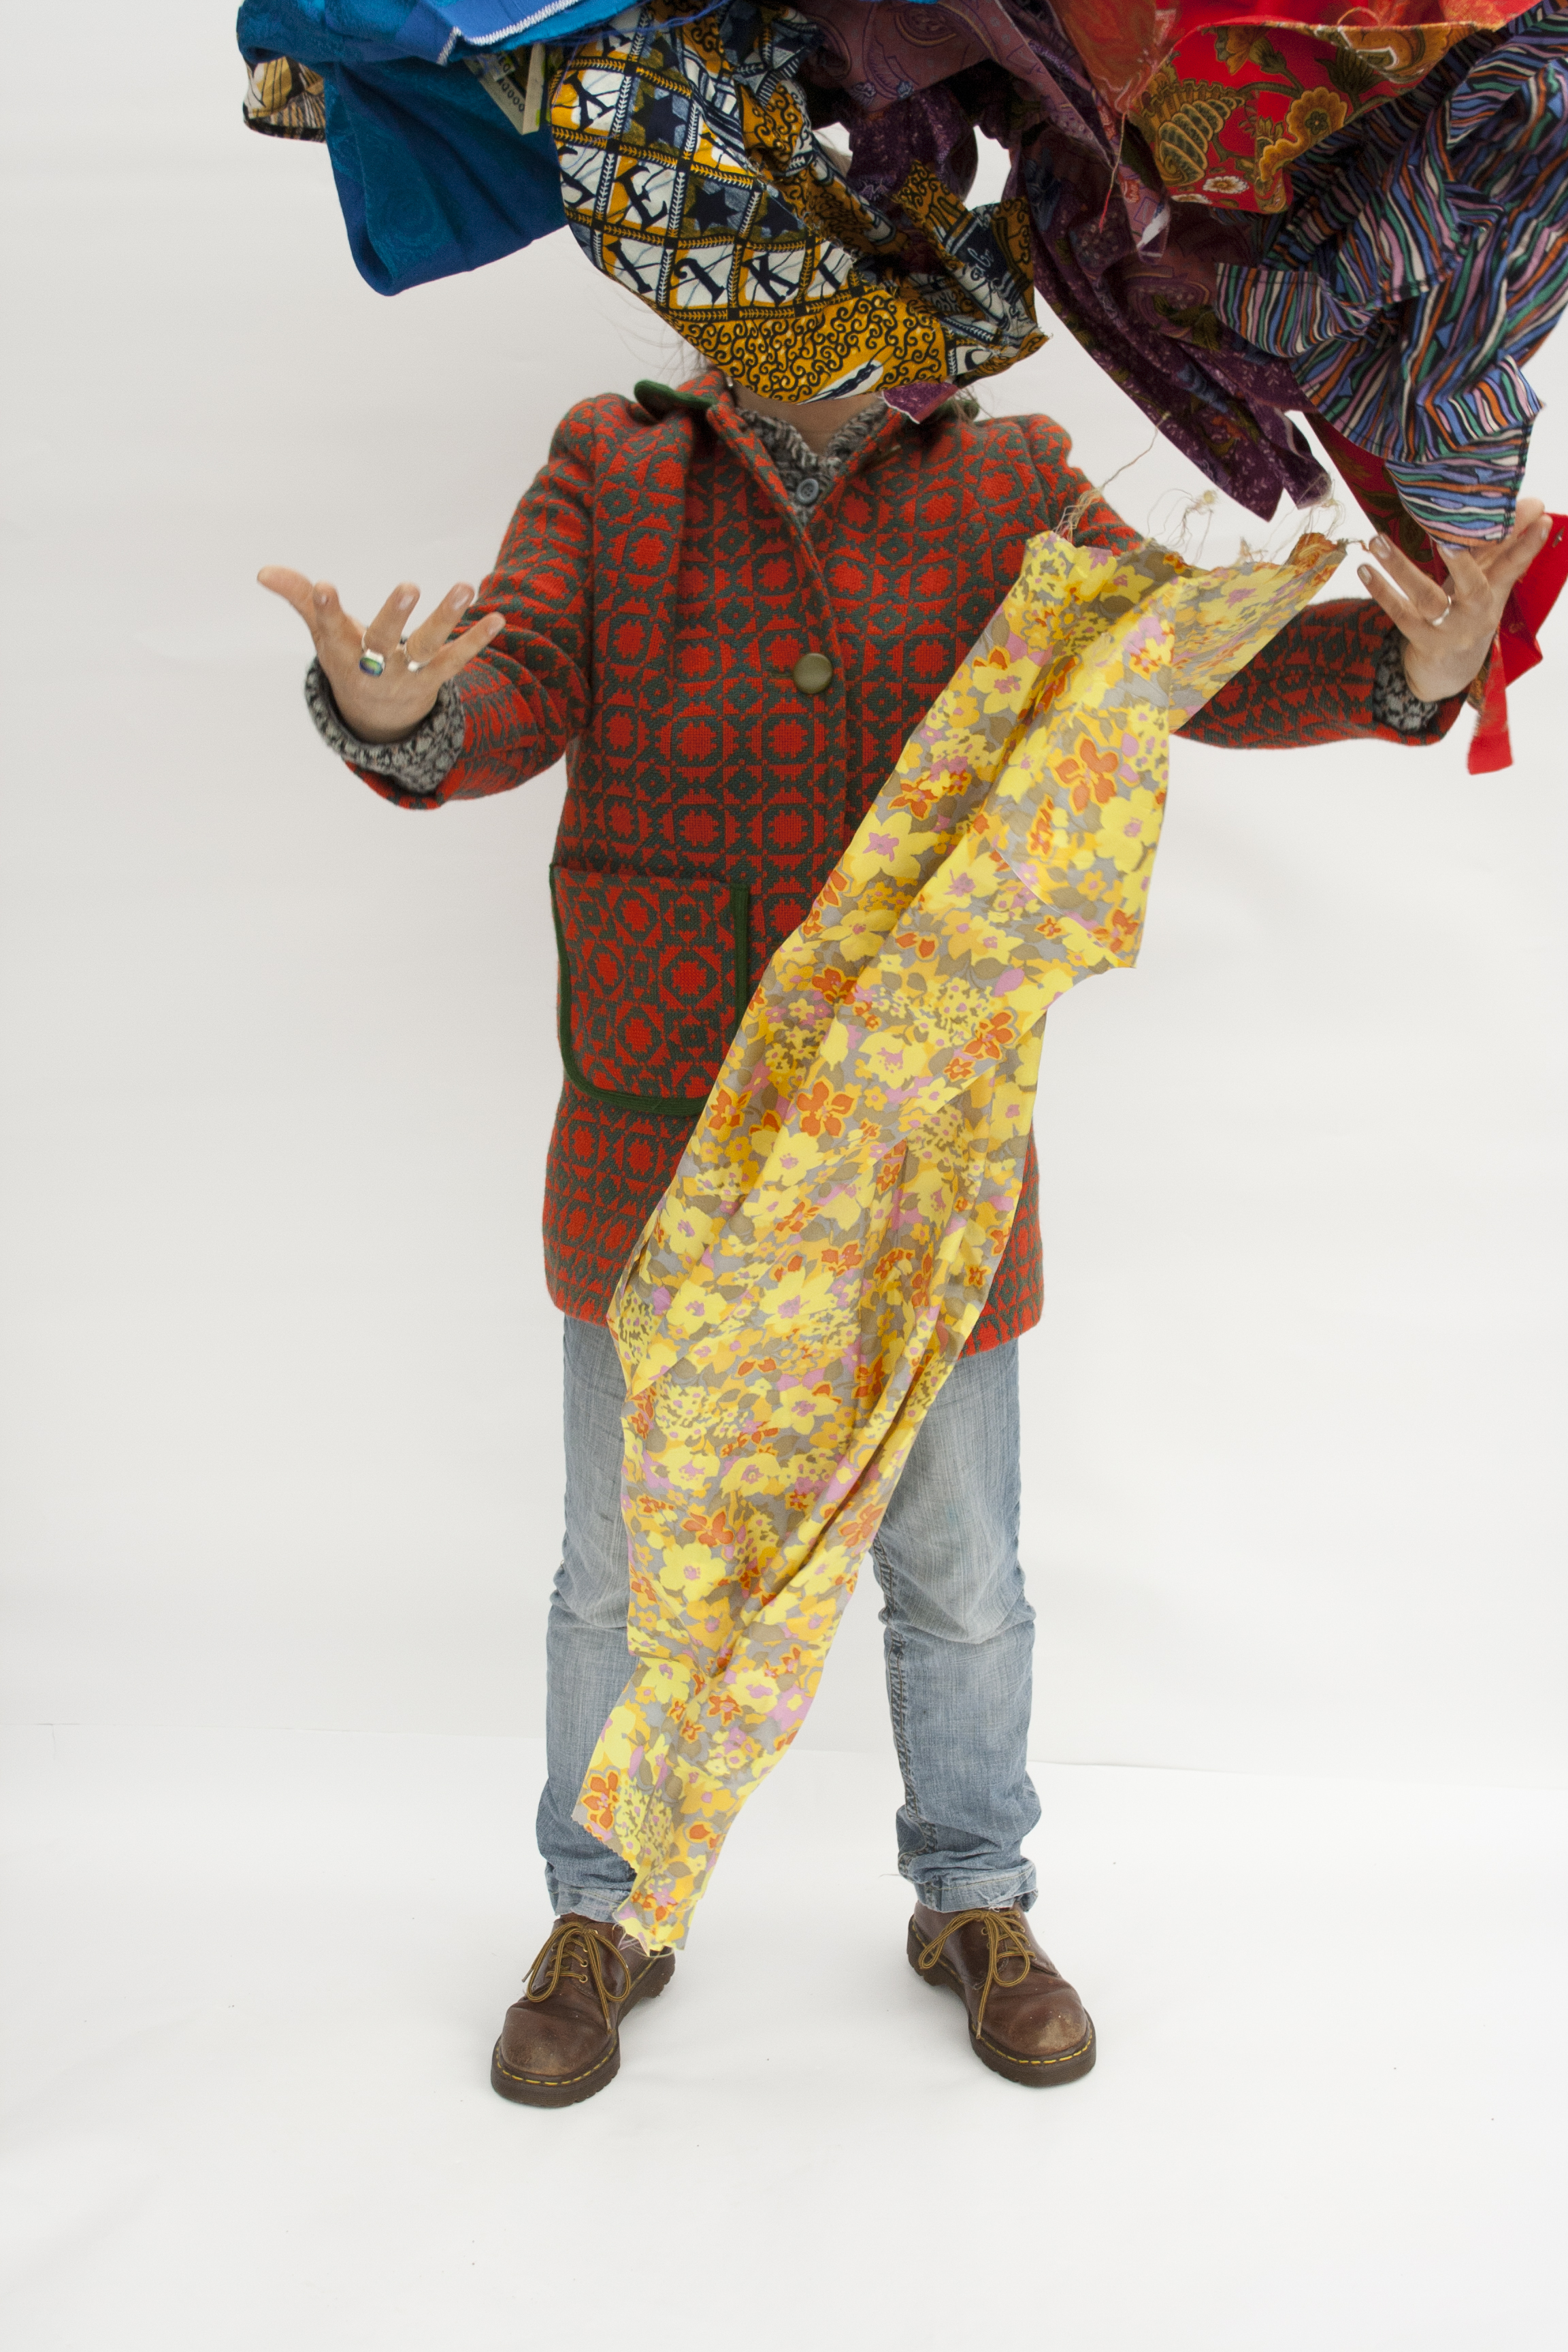 A person stands on an all white background with arms stretched towards the viewer. They are wearing a red shirt and blue jeans with a yellow fabric sash wrapped around them, and their had is obscured by more pieces of fabric in bright colours which h